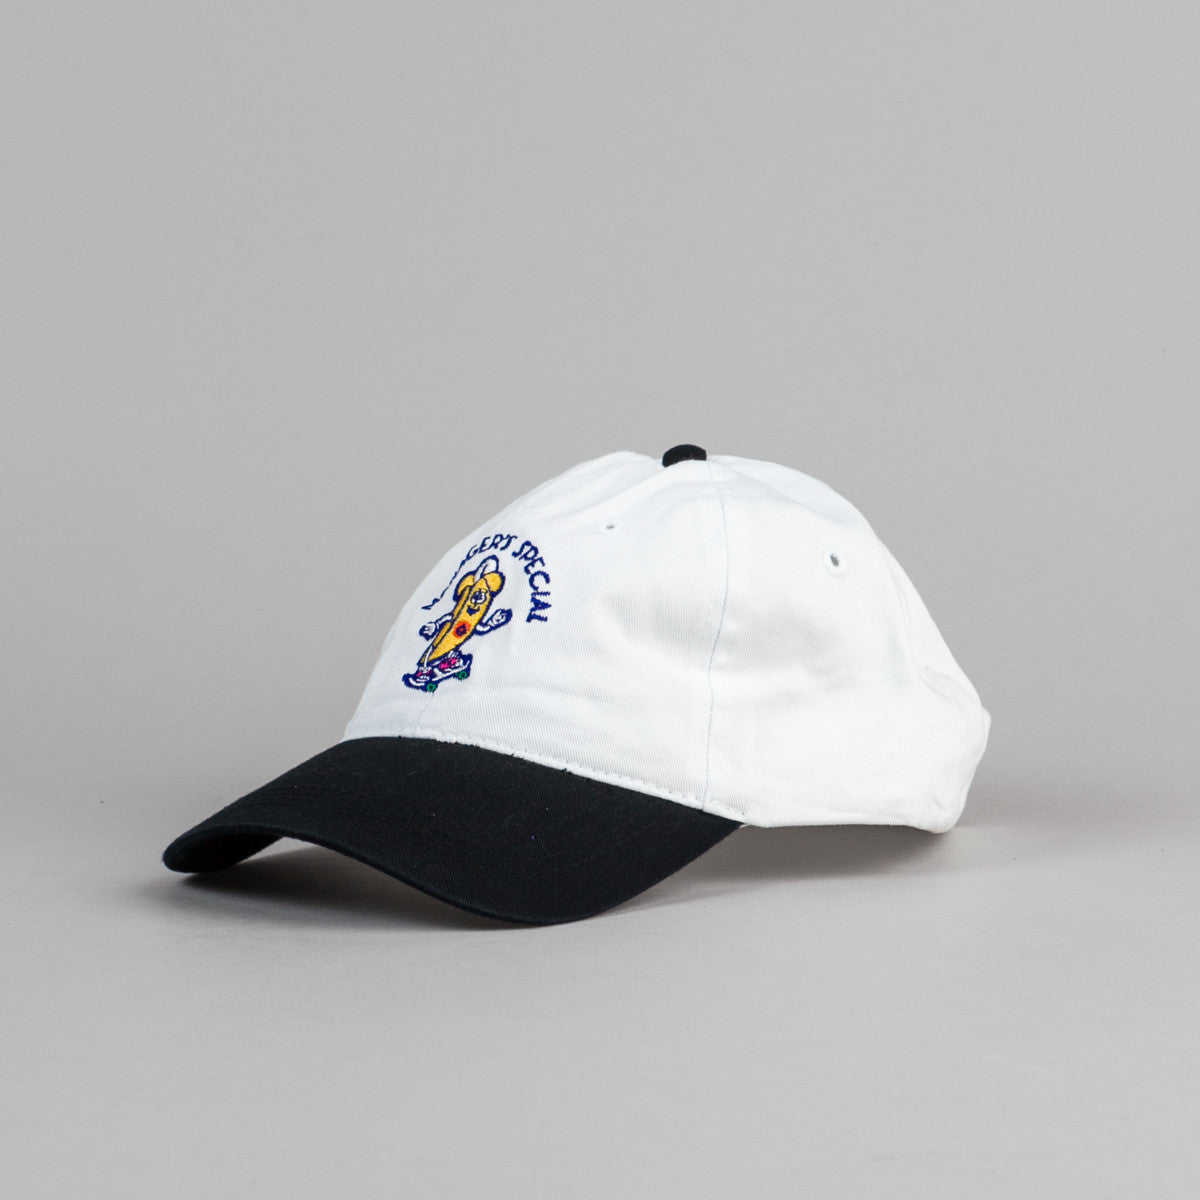 Manager's Special Bobby The Banana Cap - White / Black